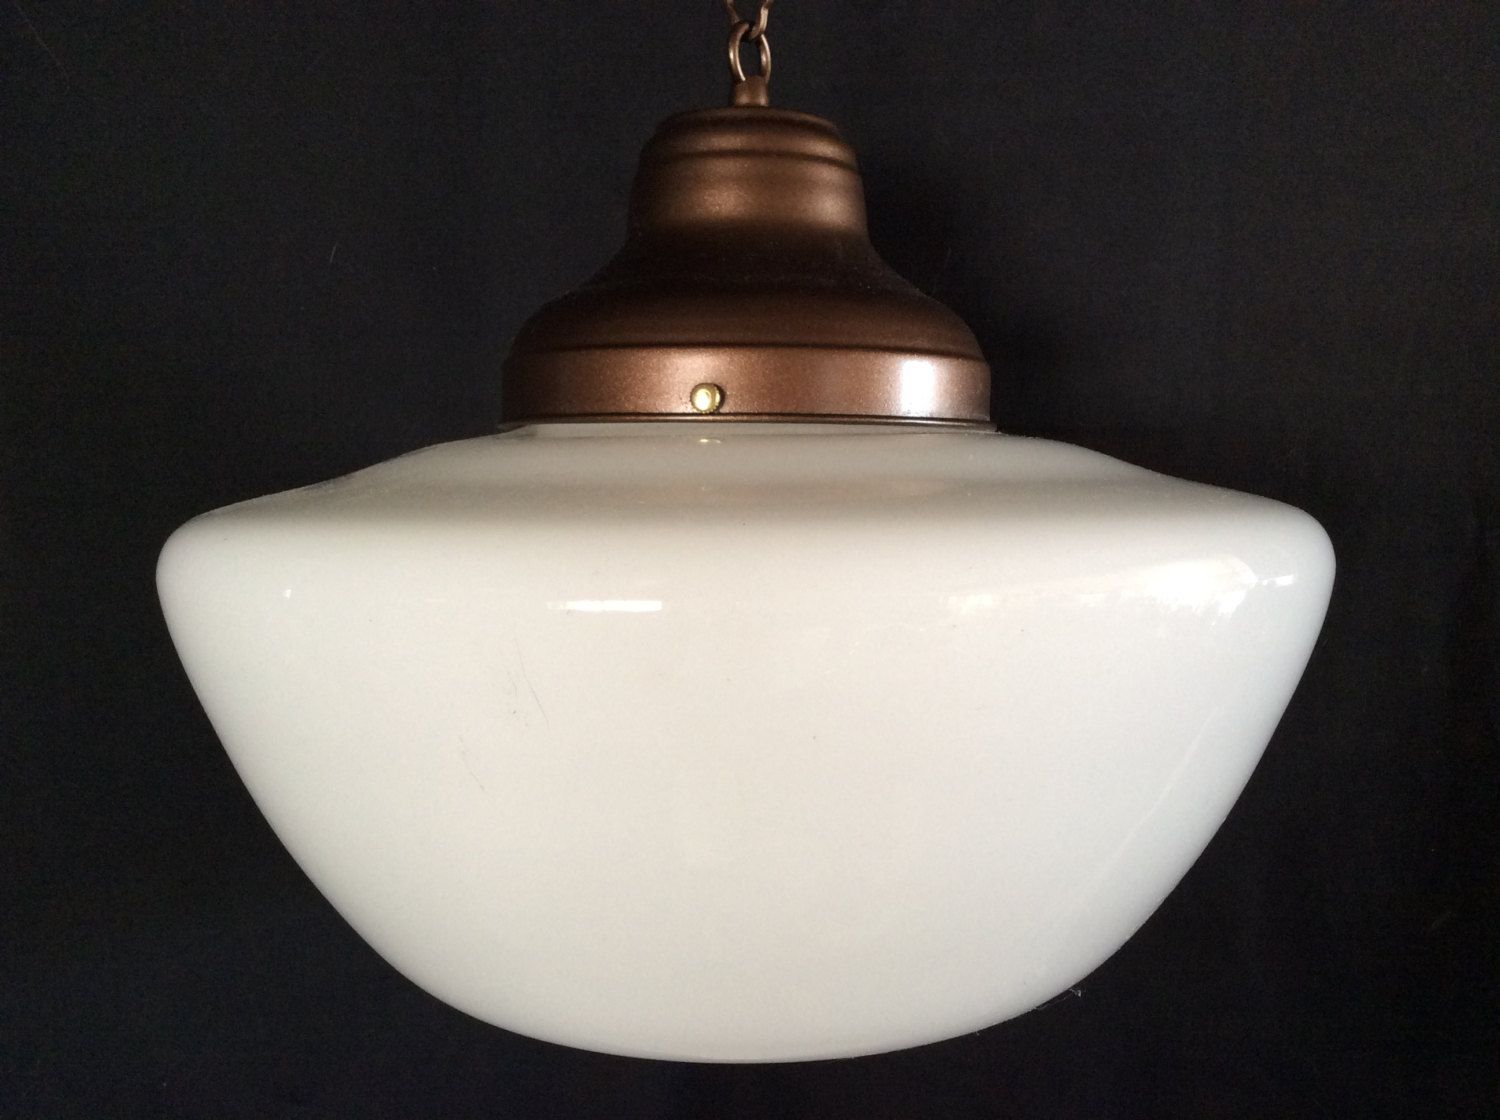 Antique hanging church industrial or school house pendant light antique hanging church industrial or school house pendant light fixture 1920 1930s milk glass arubaitofo Gallery